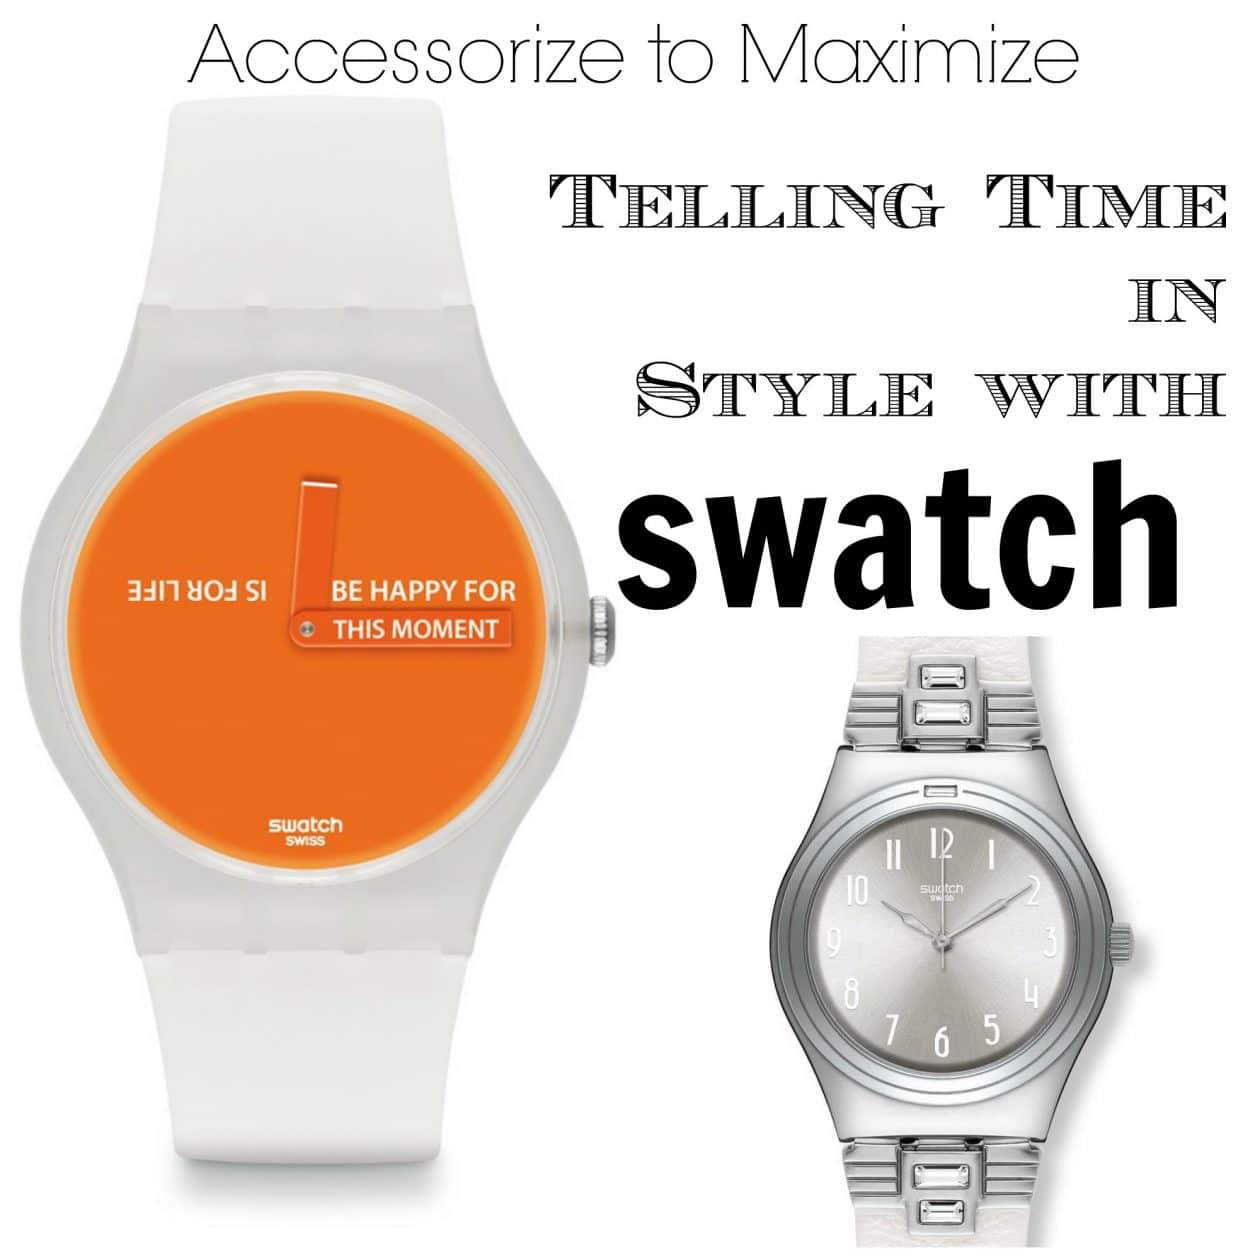 Accessorize to Maximize- Telling Time in Style with Swatch